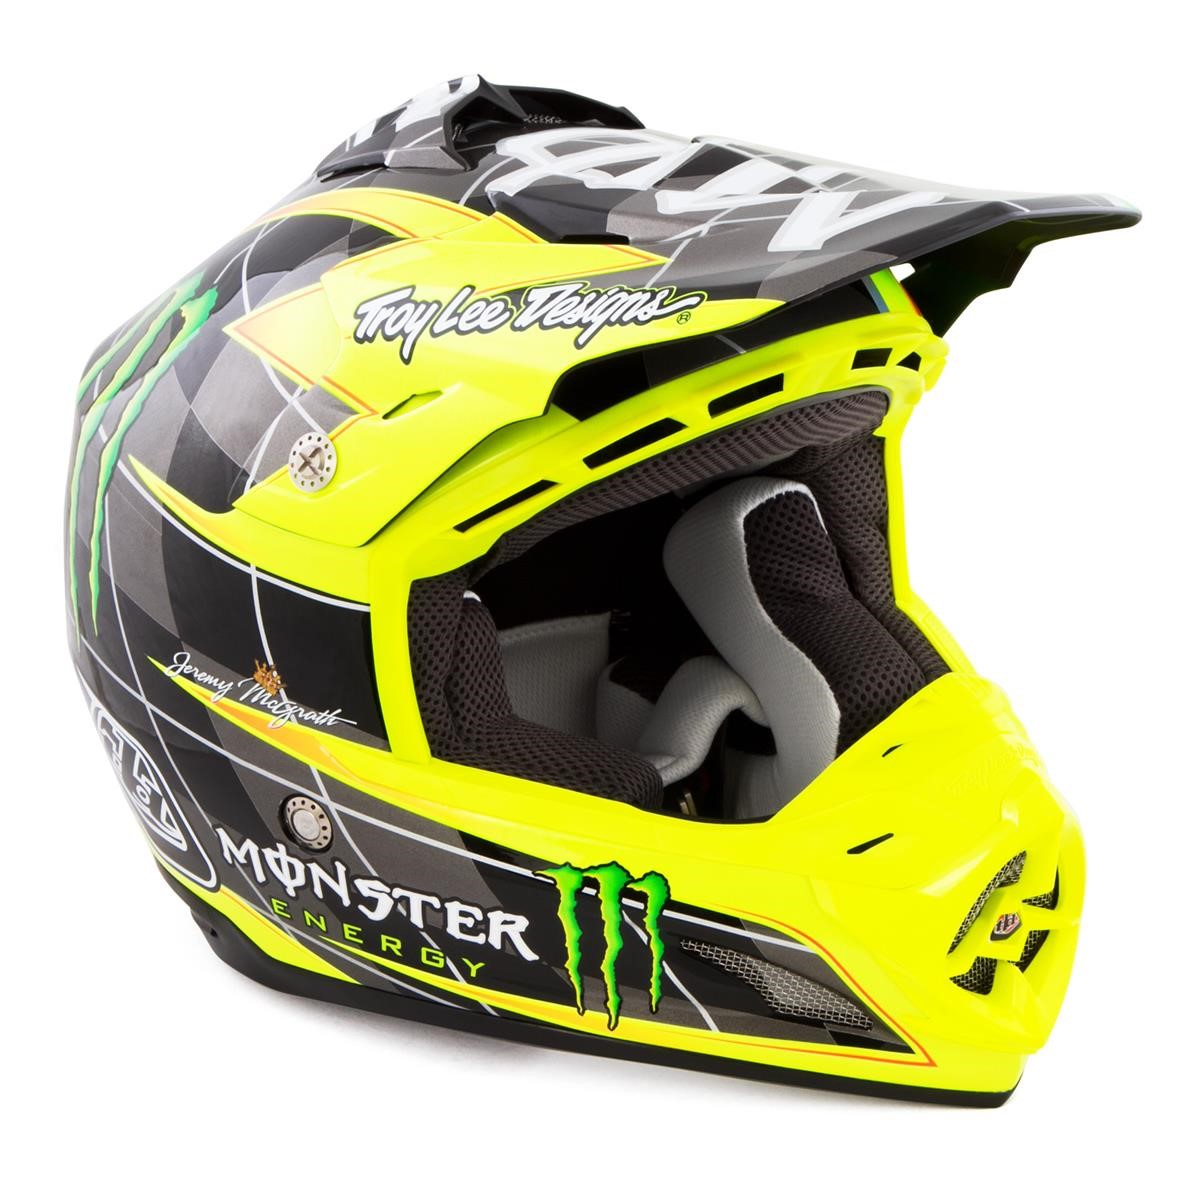 Troy lee designs se3 mc monster 2013 maciag offroad for Helm design